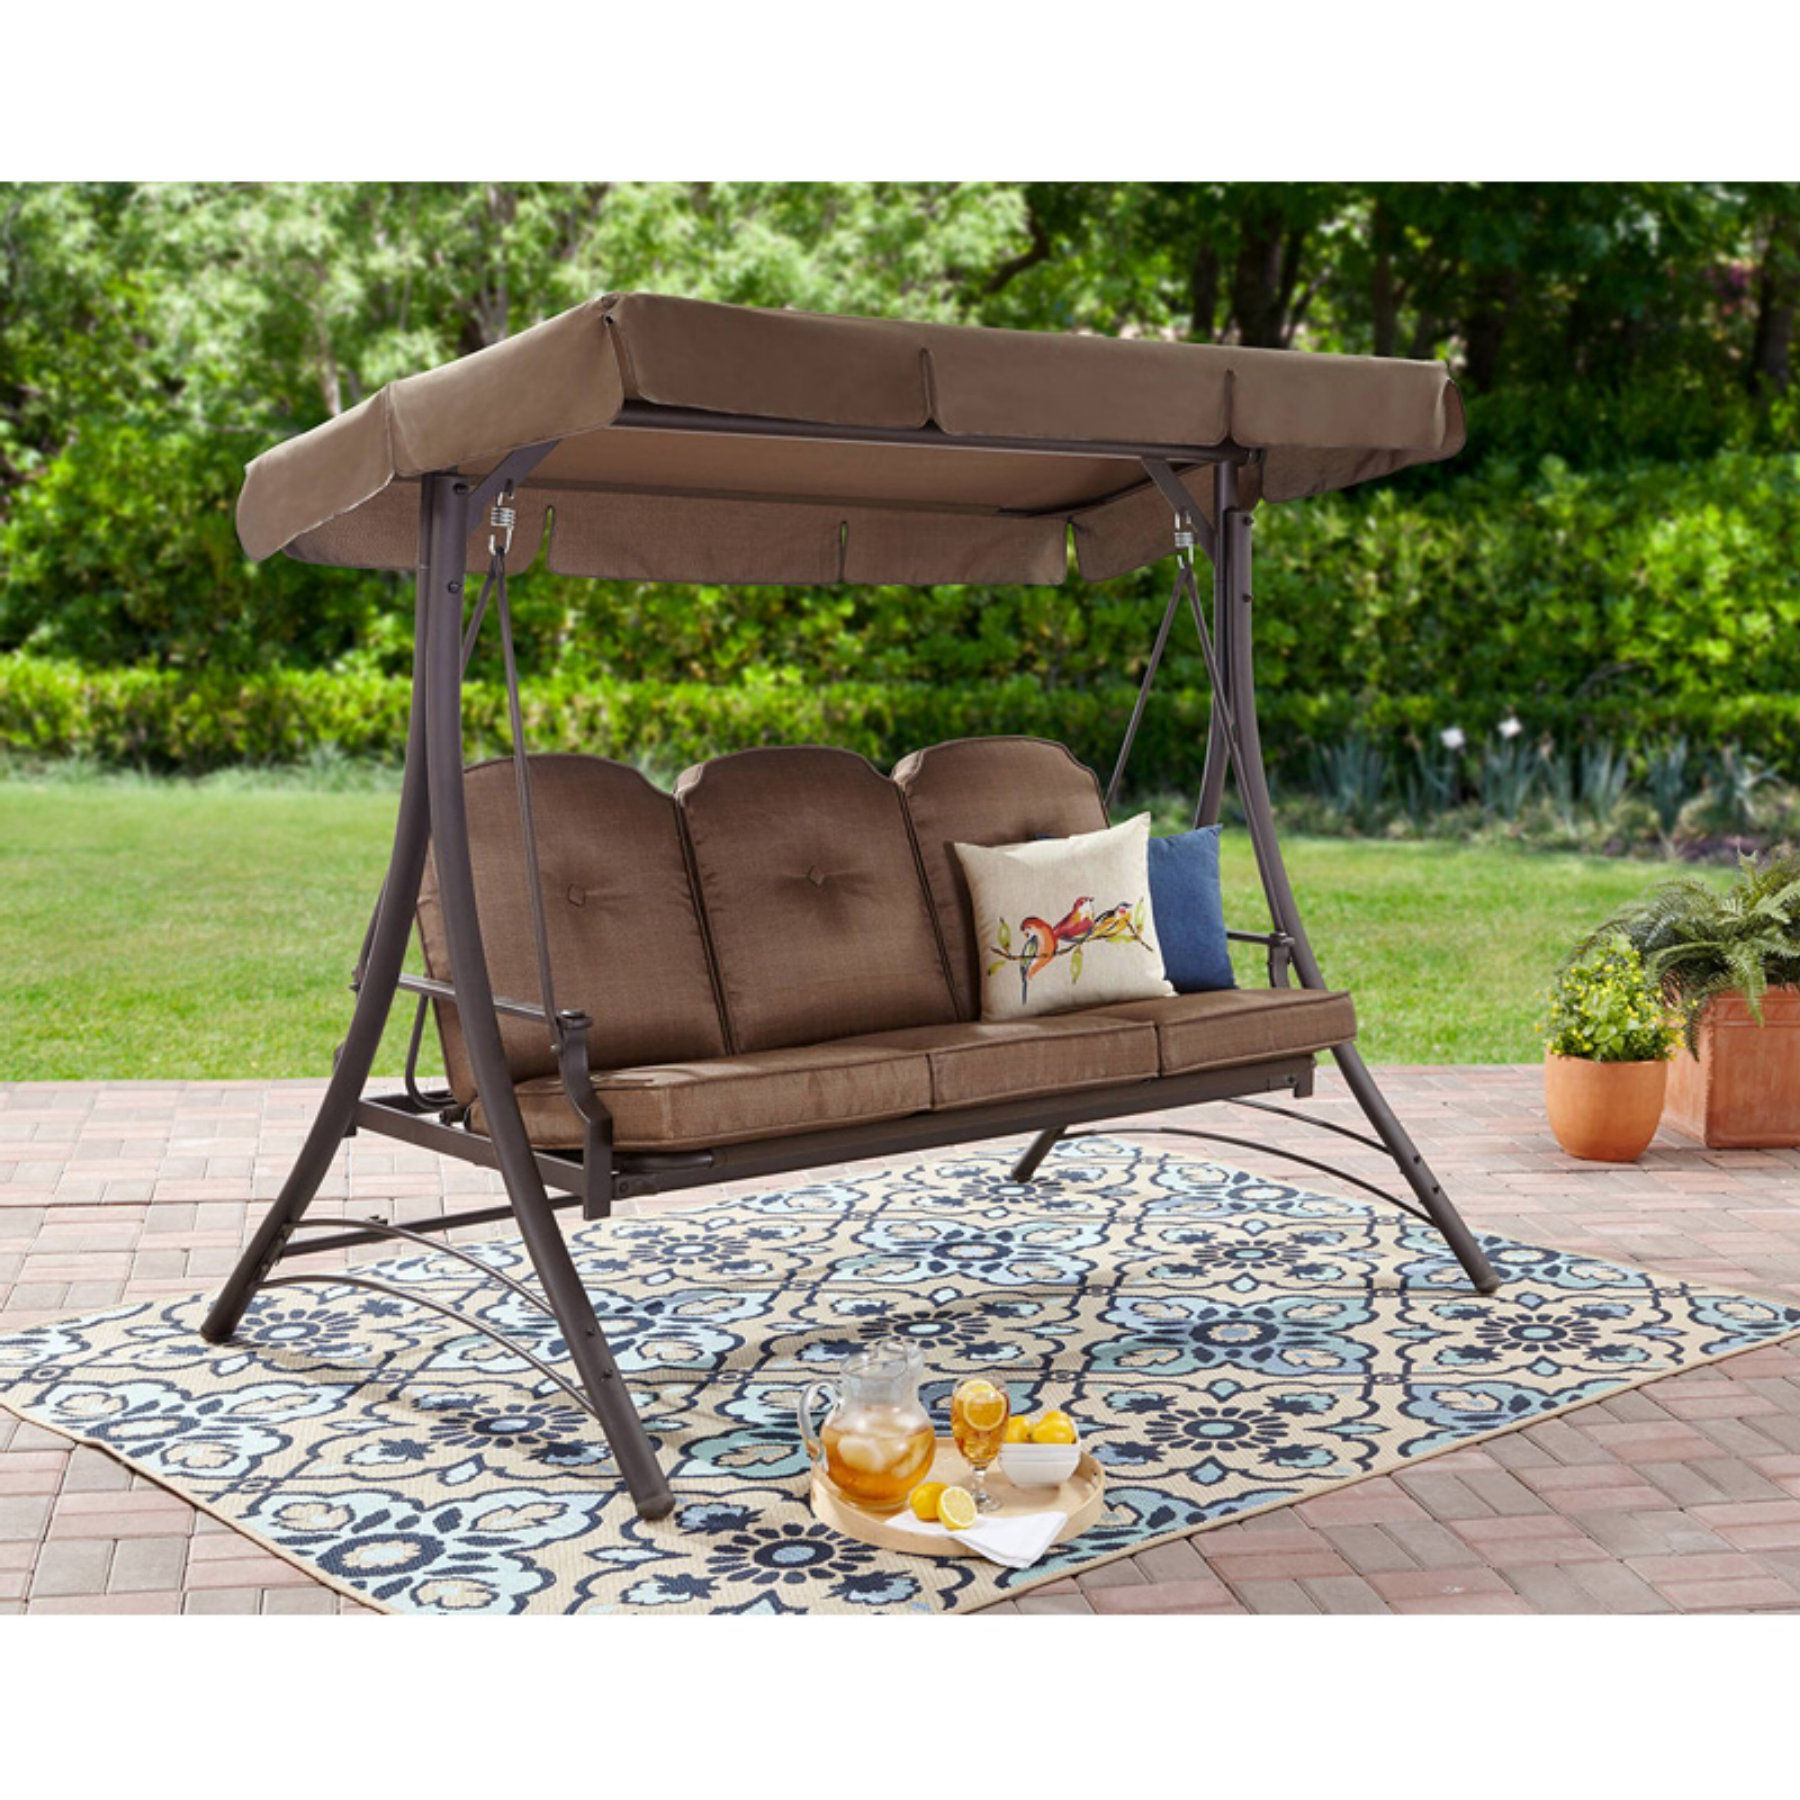 Most Recent 3 Seats Patio Canopy Swing Gliders Hammock Cushioned Steel Frame For Mainstays Wentworth 3 Person Porch Swing Frame Set With (Gallery 16 of 30)